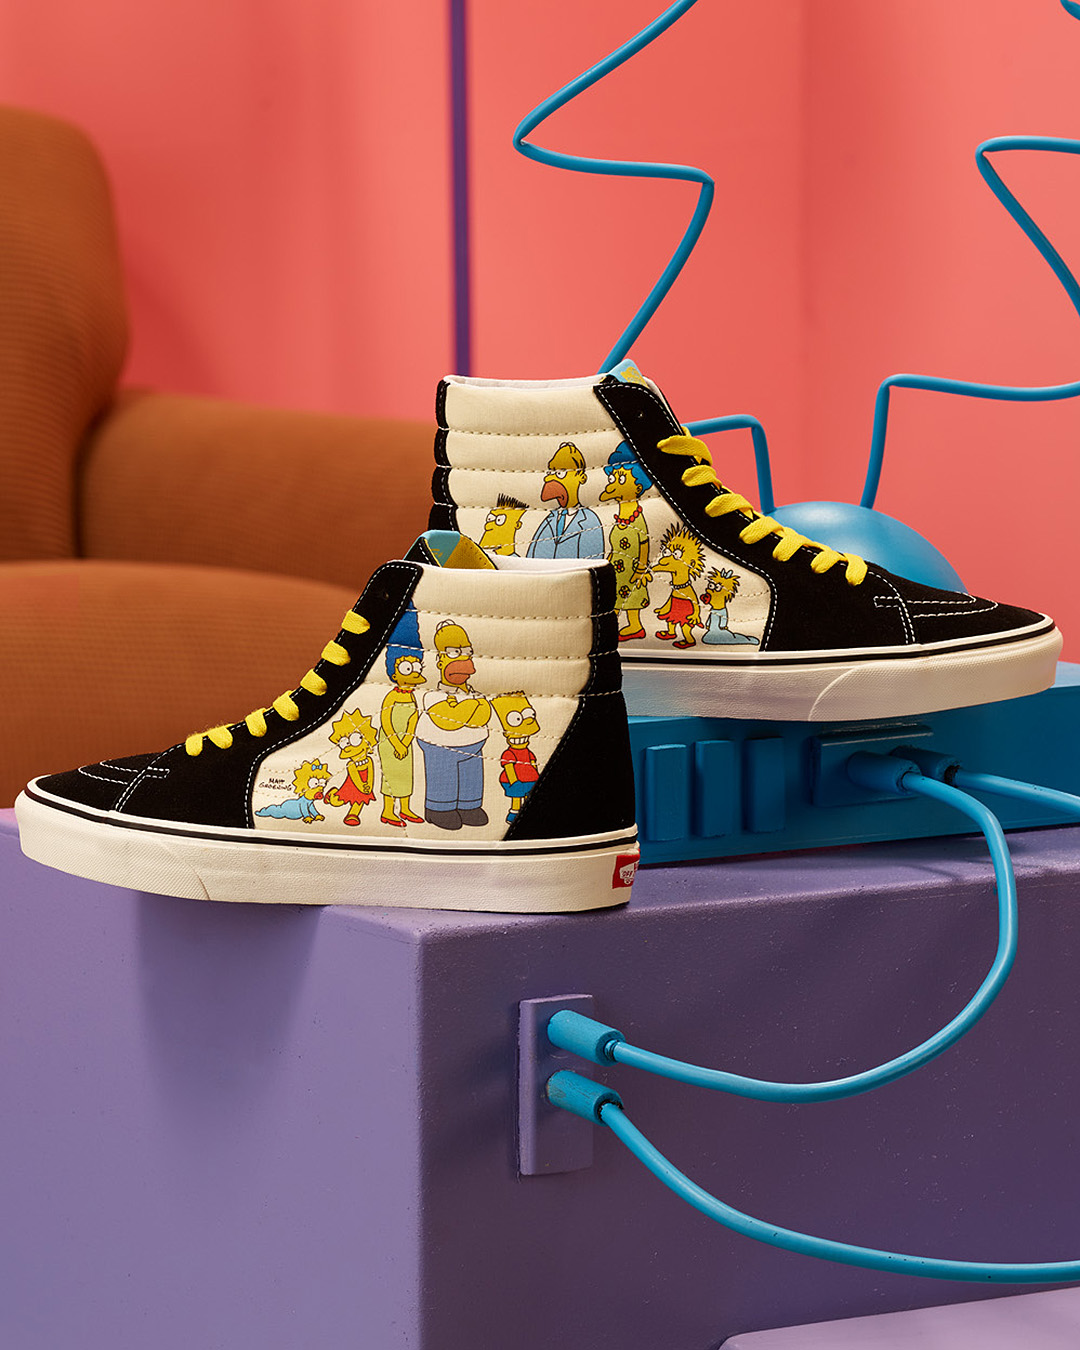 Sk8-Hi tops from Vans x Simpsons featuring old and new school Simpsons characters.